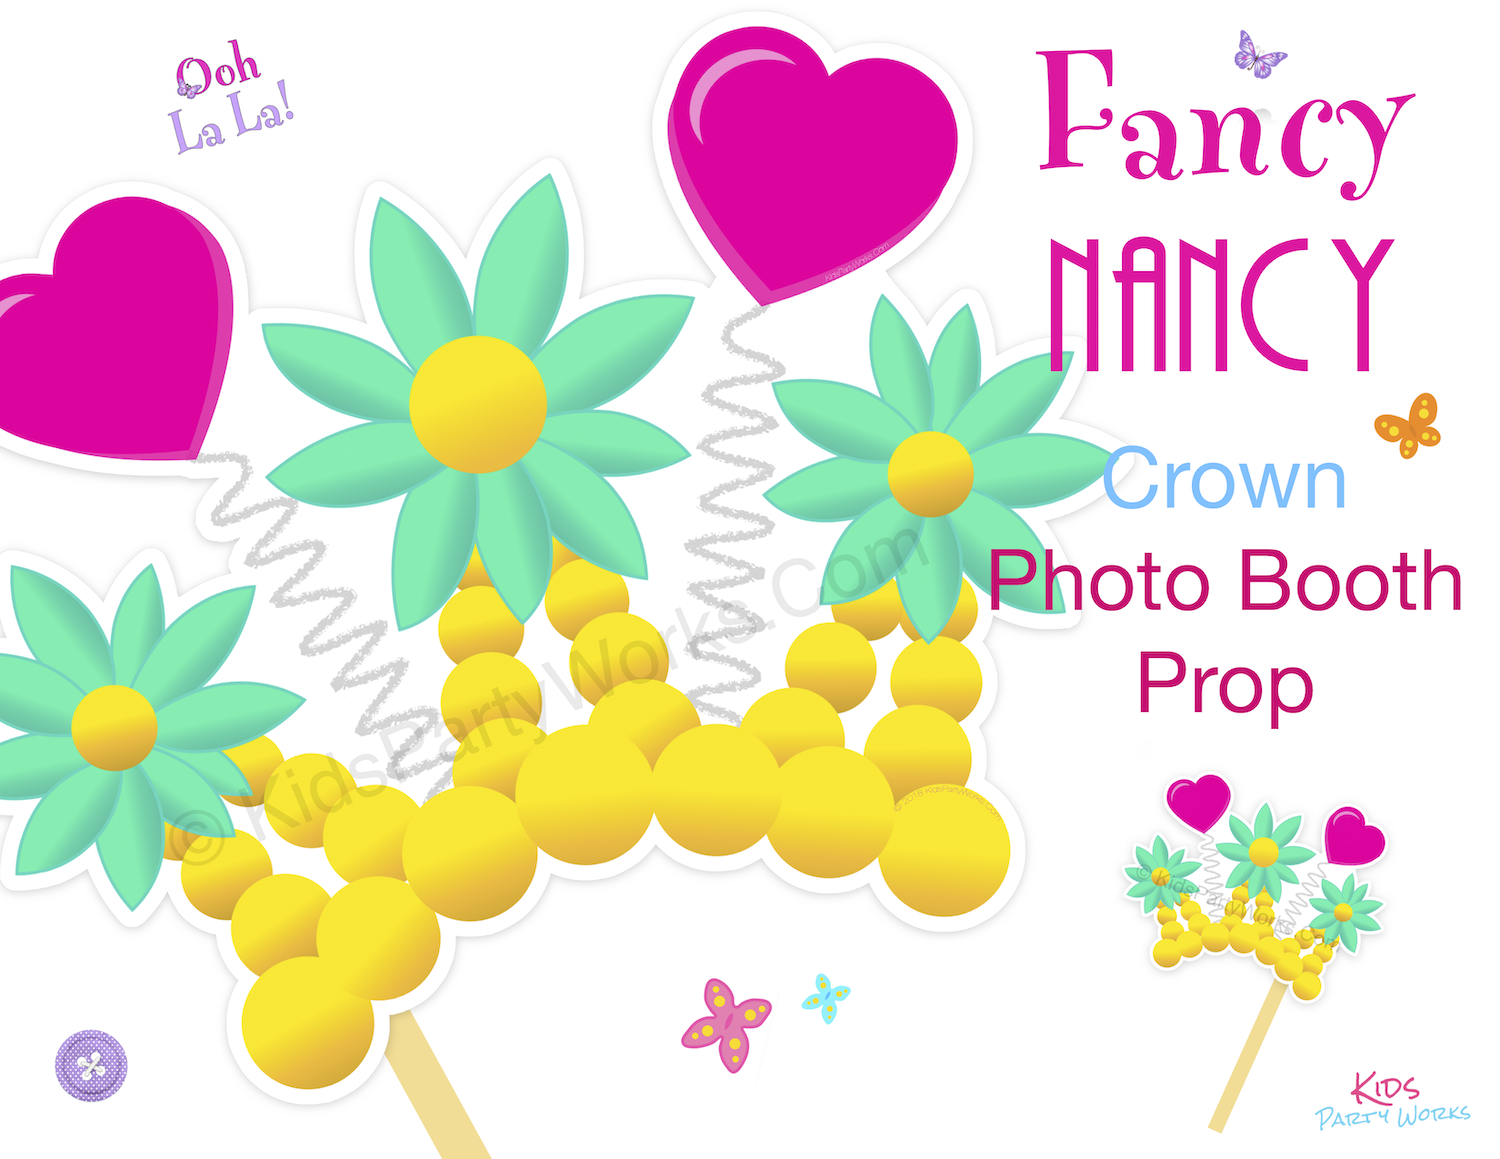 Free Fancy Nancy Crown Photo Booth Prop at KidsPartyWorks.Com